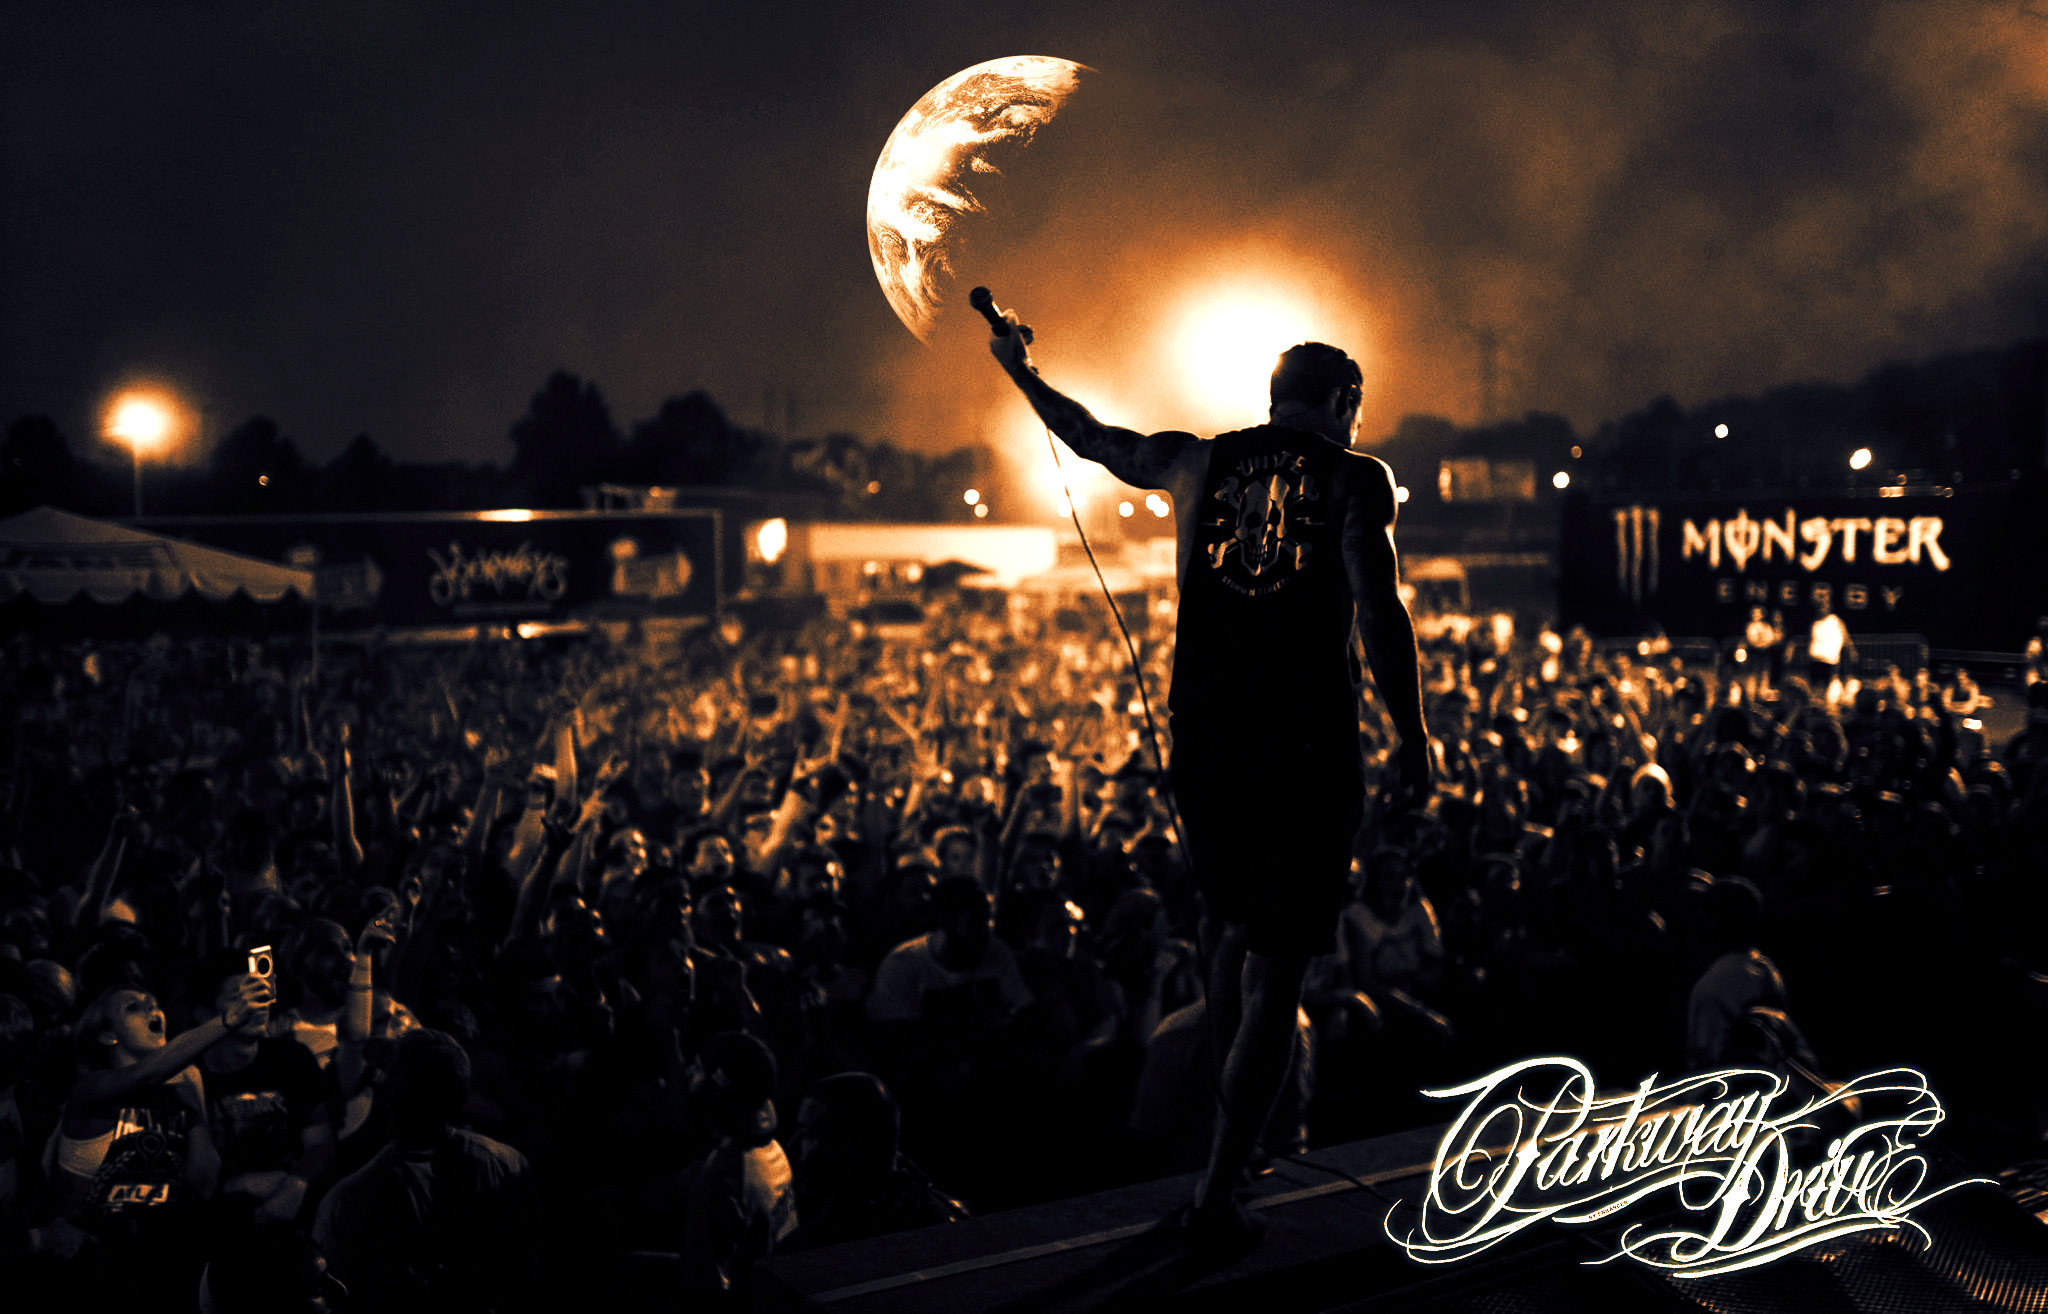 Fast Cars And Girls Wallpaper Download Parkway Drive Wallpaper Gallery